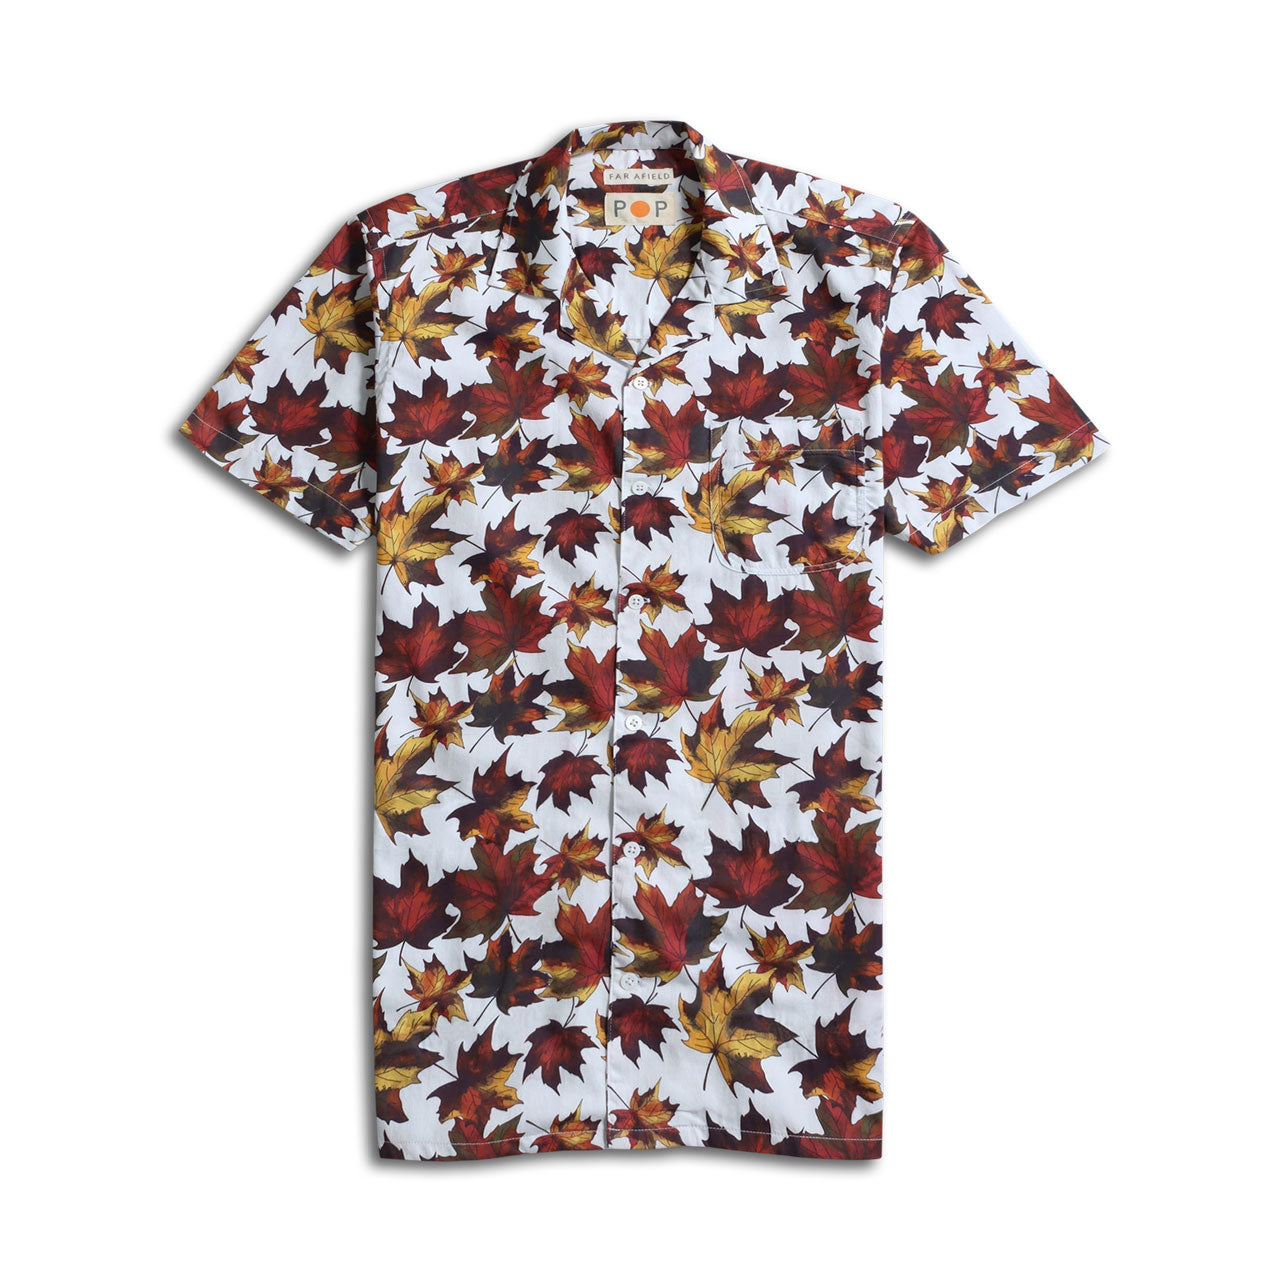 Far Afield Tyler Durden Shirt